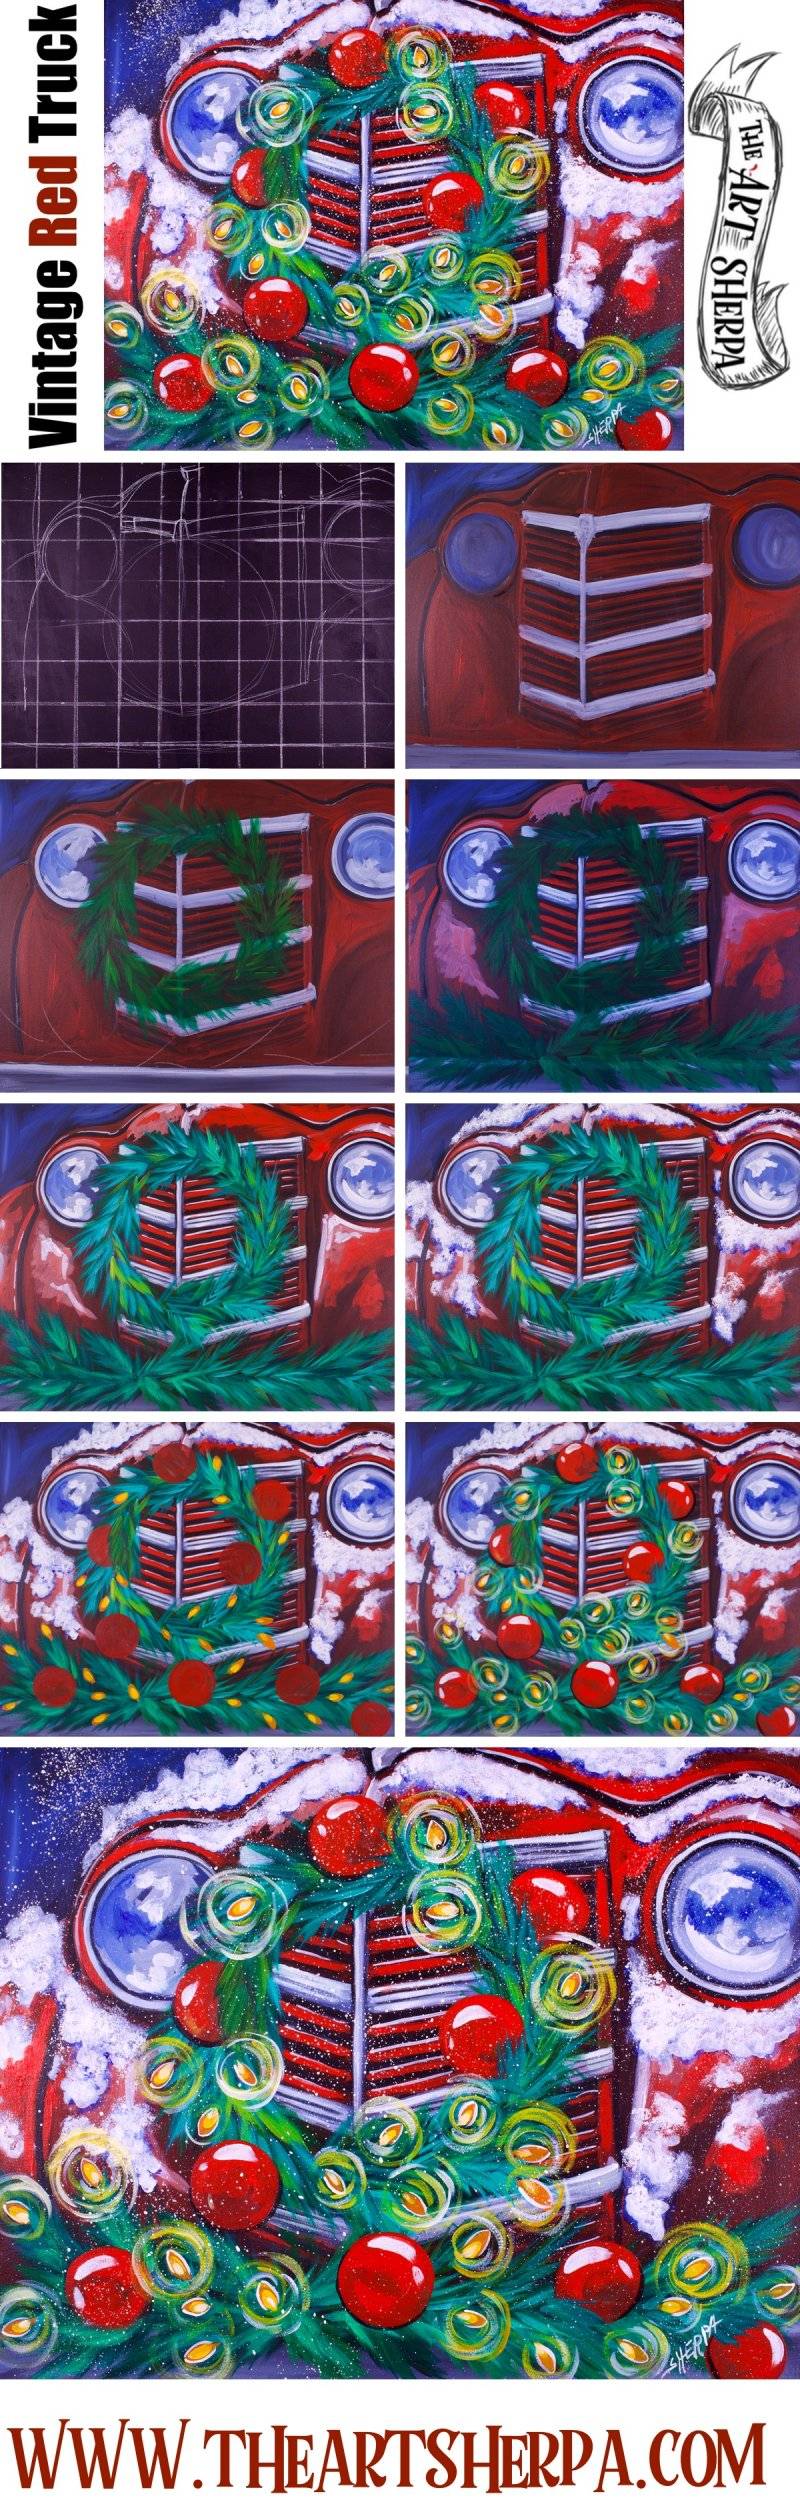 Christmas truck step by step.jpg